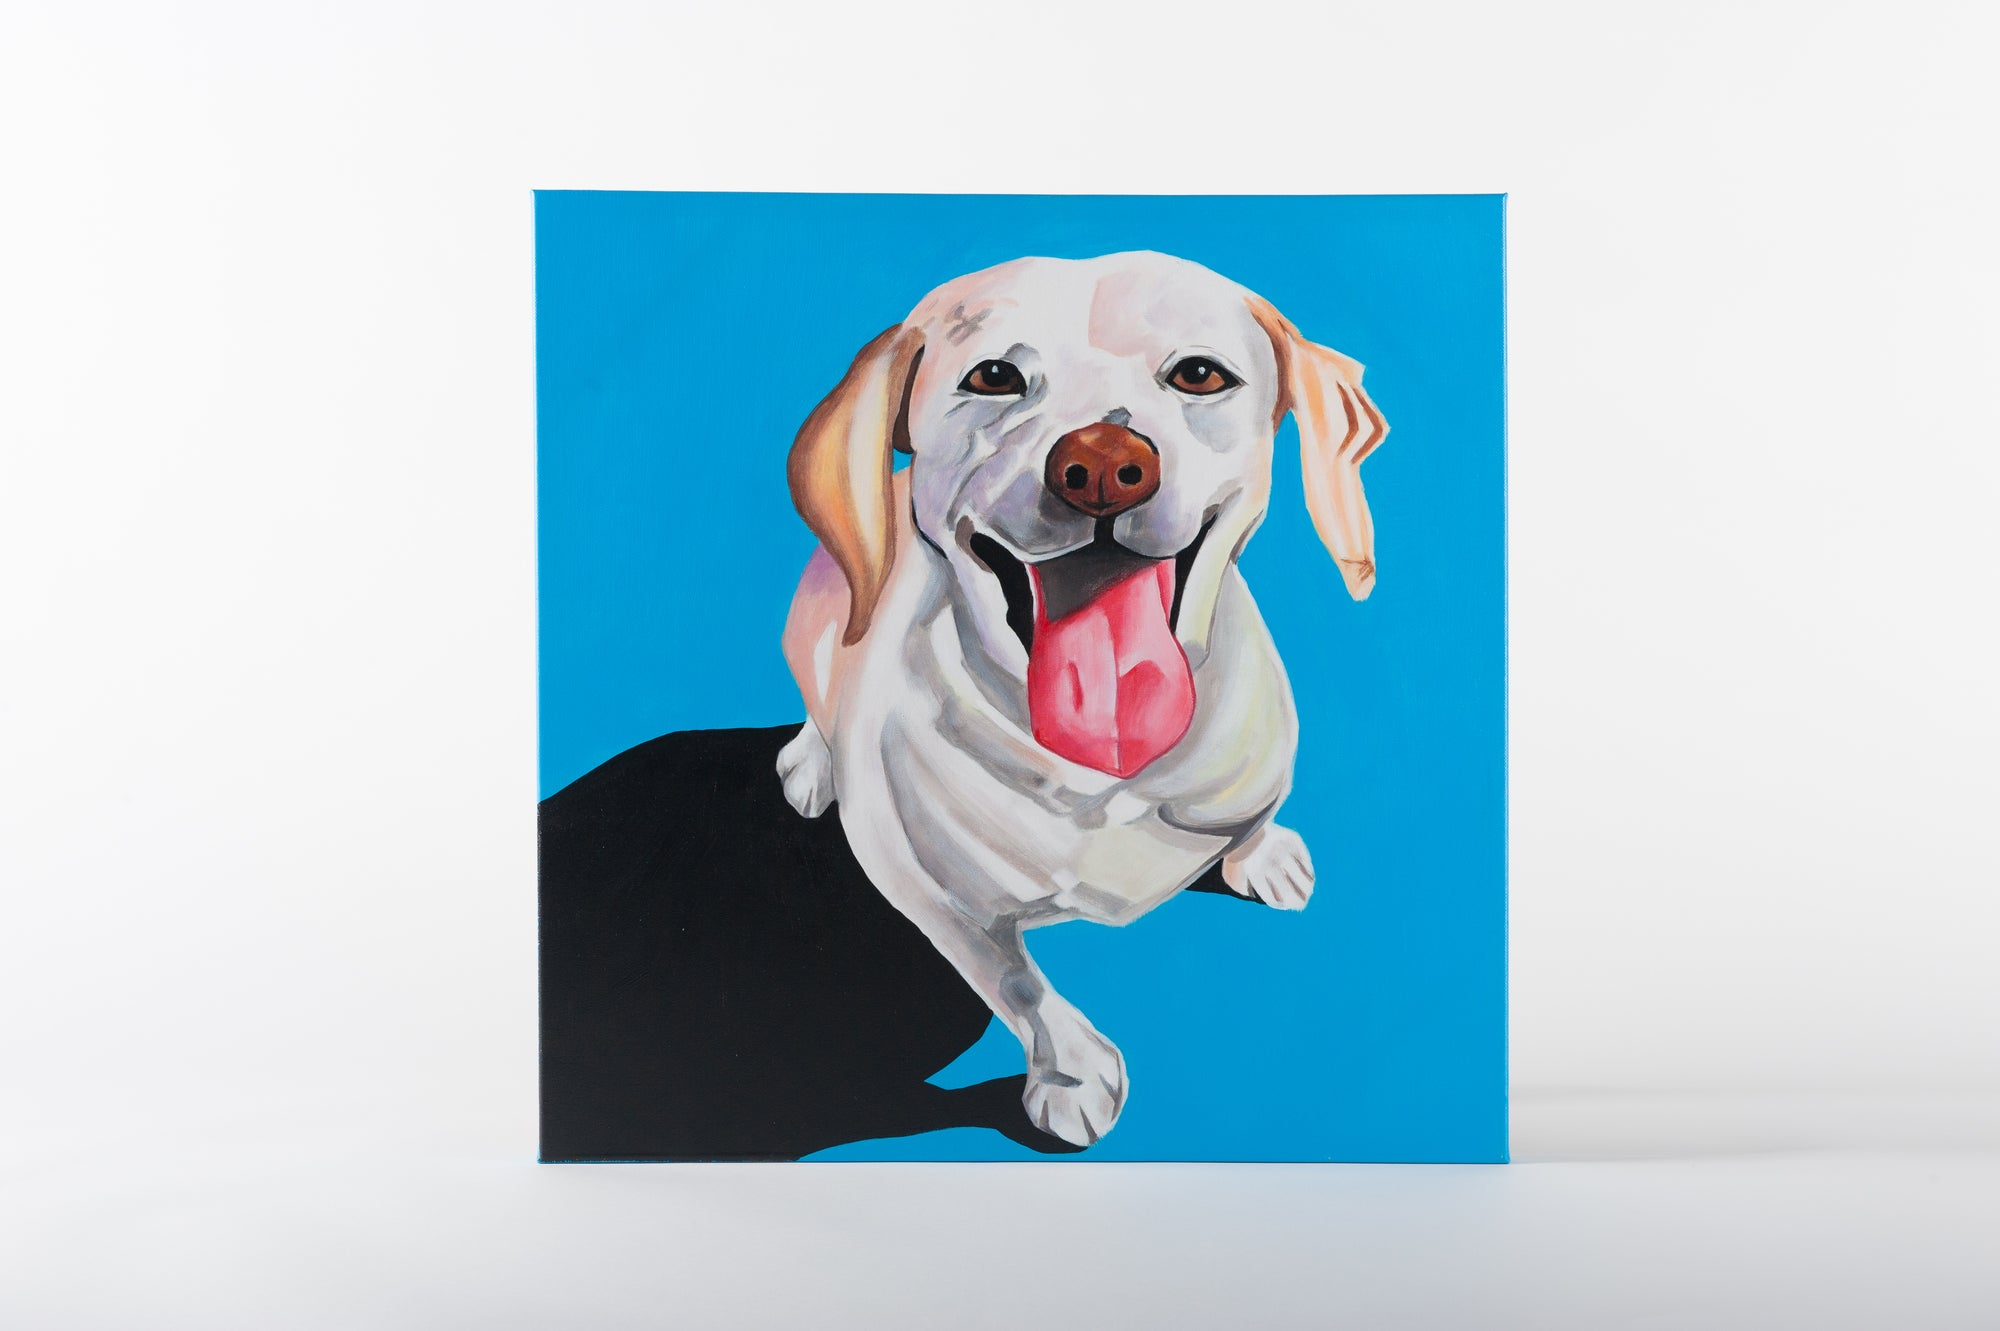 mans best friend blue  hand painted animal wall art on canvas - Fervor + Hue